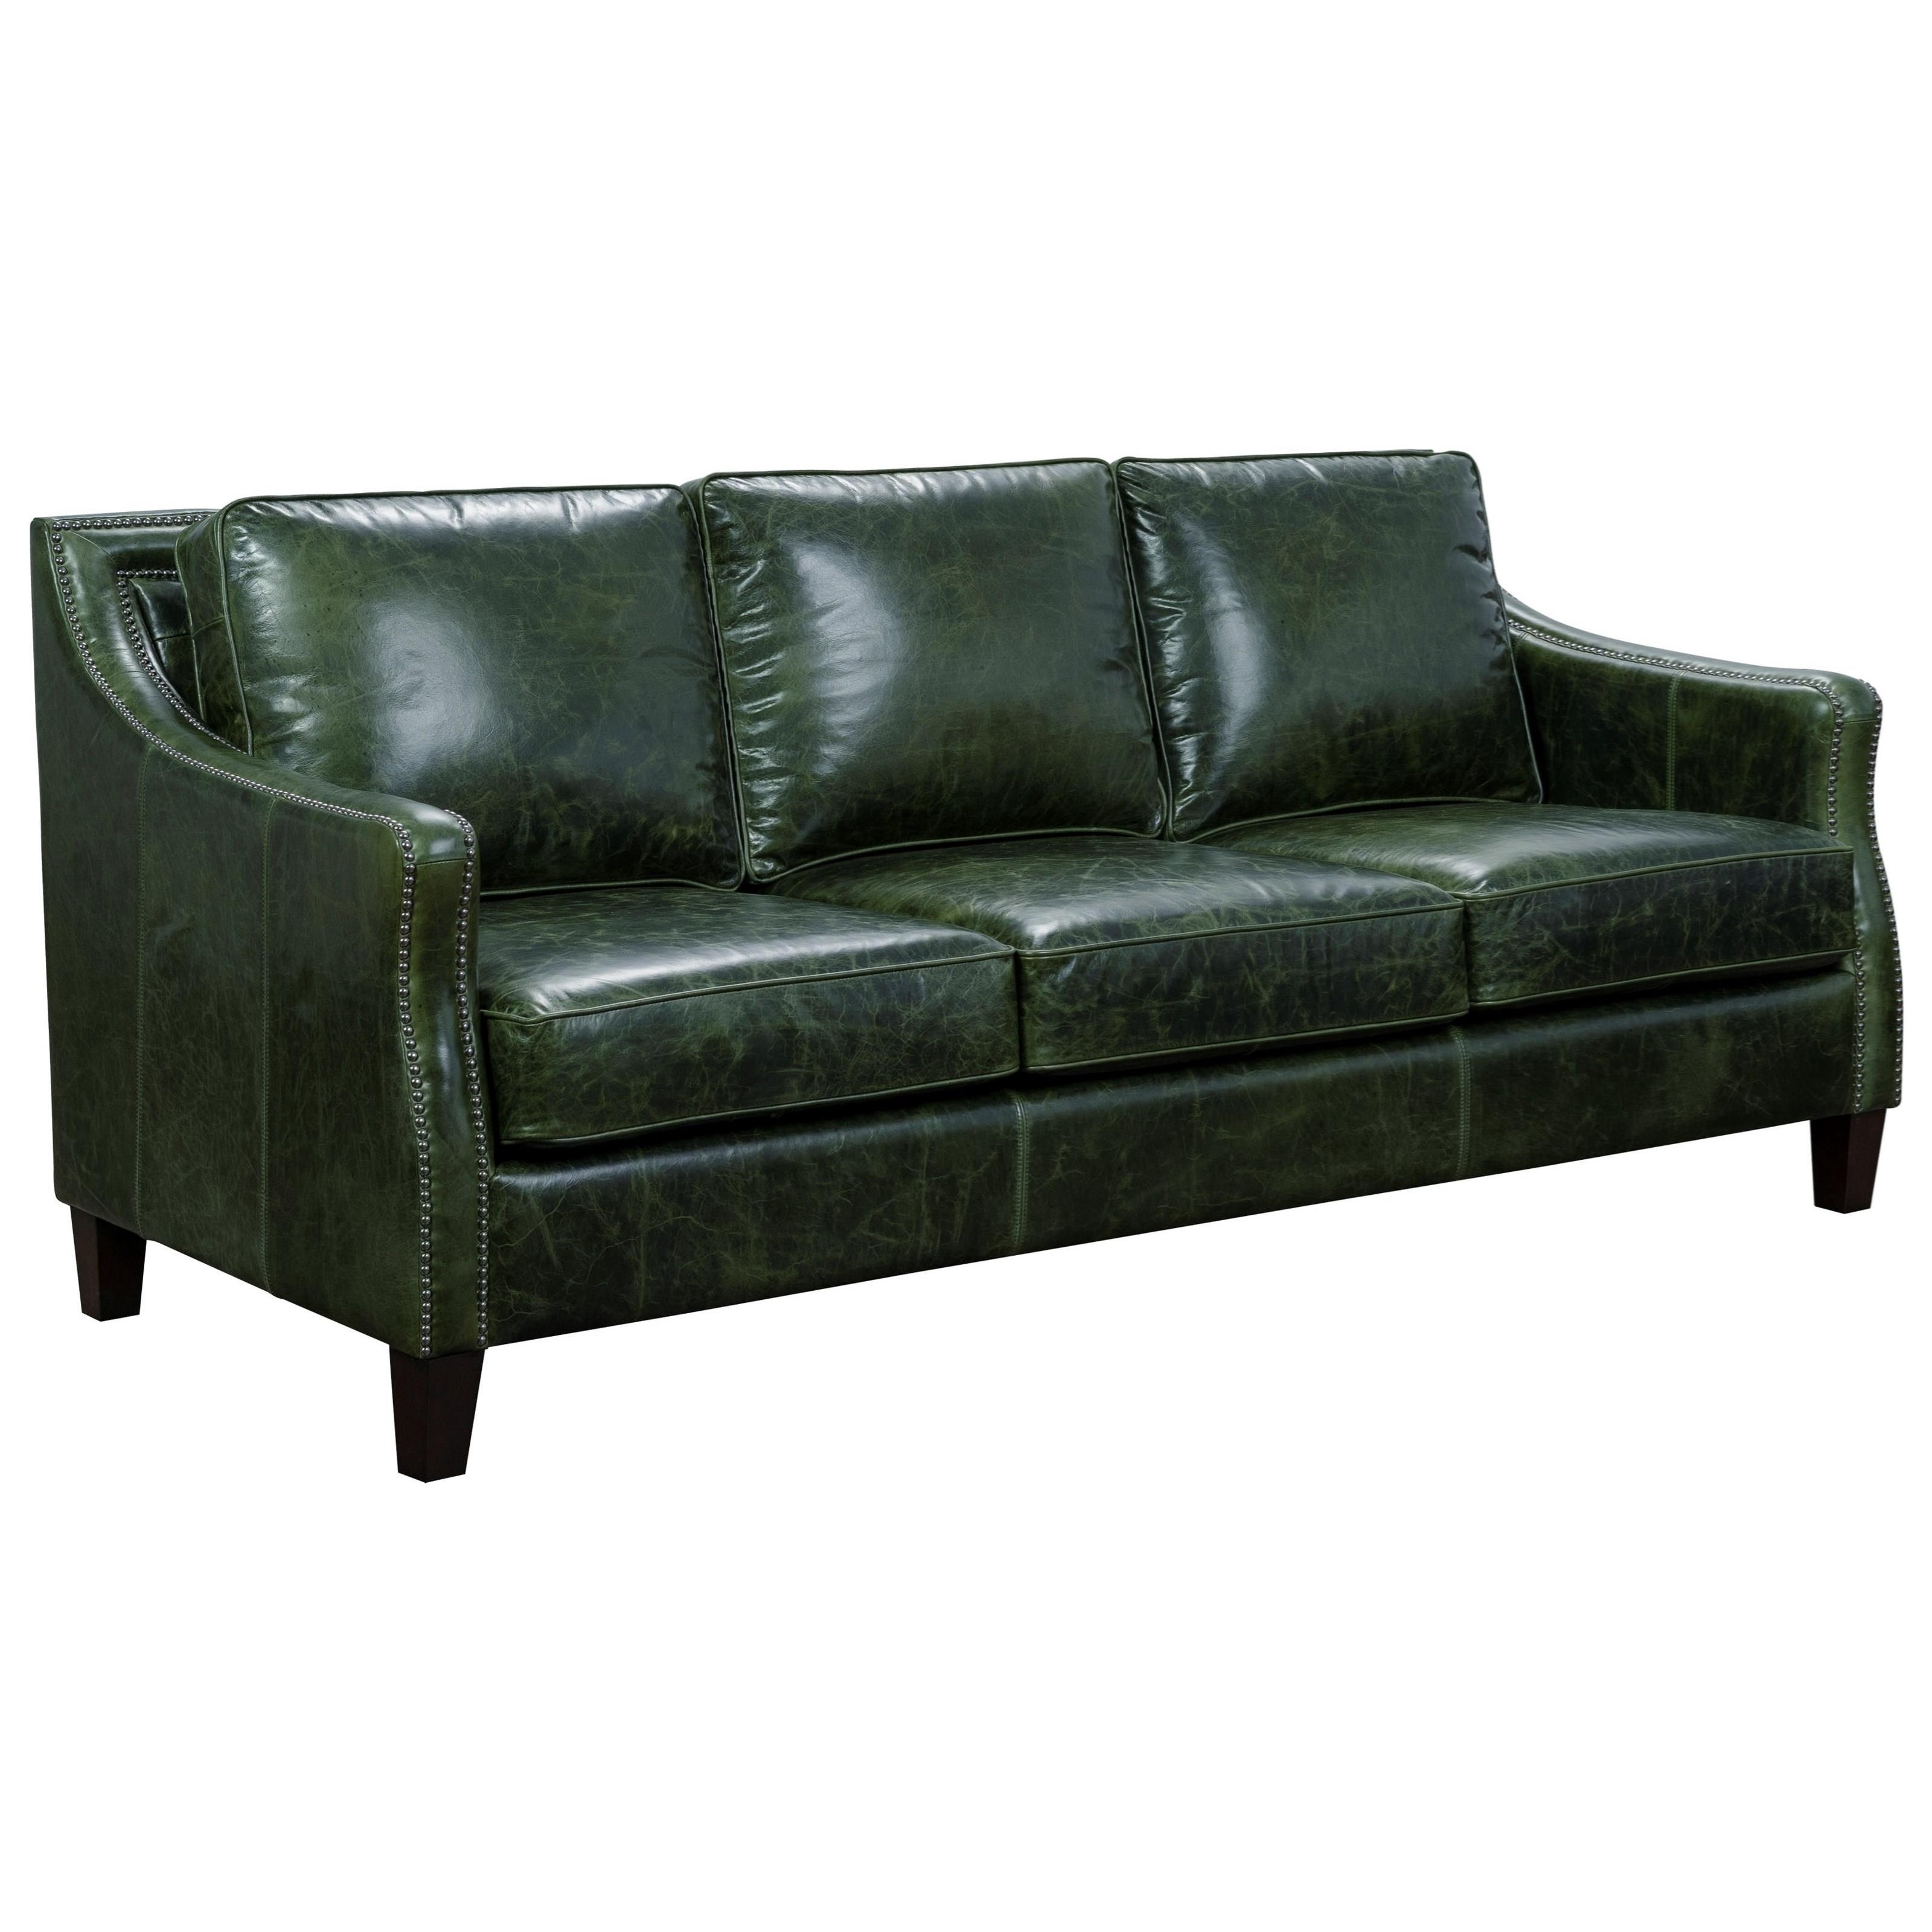 Miles Stationary Uph Sofa by Pulaski Furniture at Carolina Direct